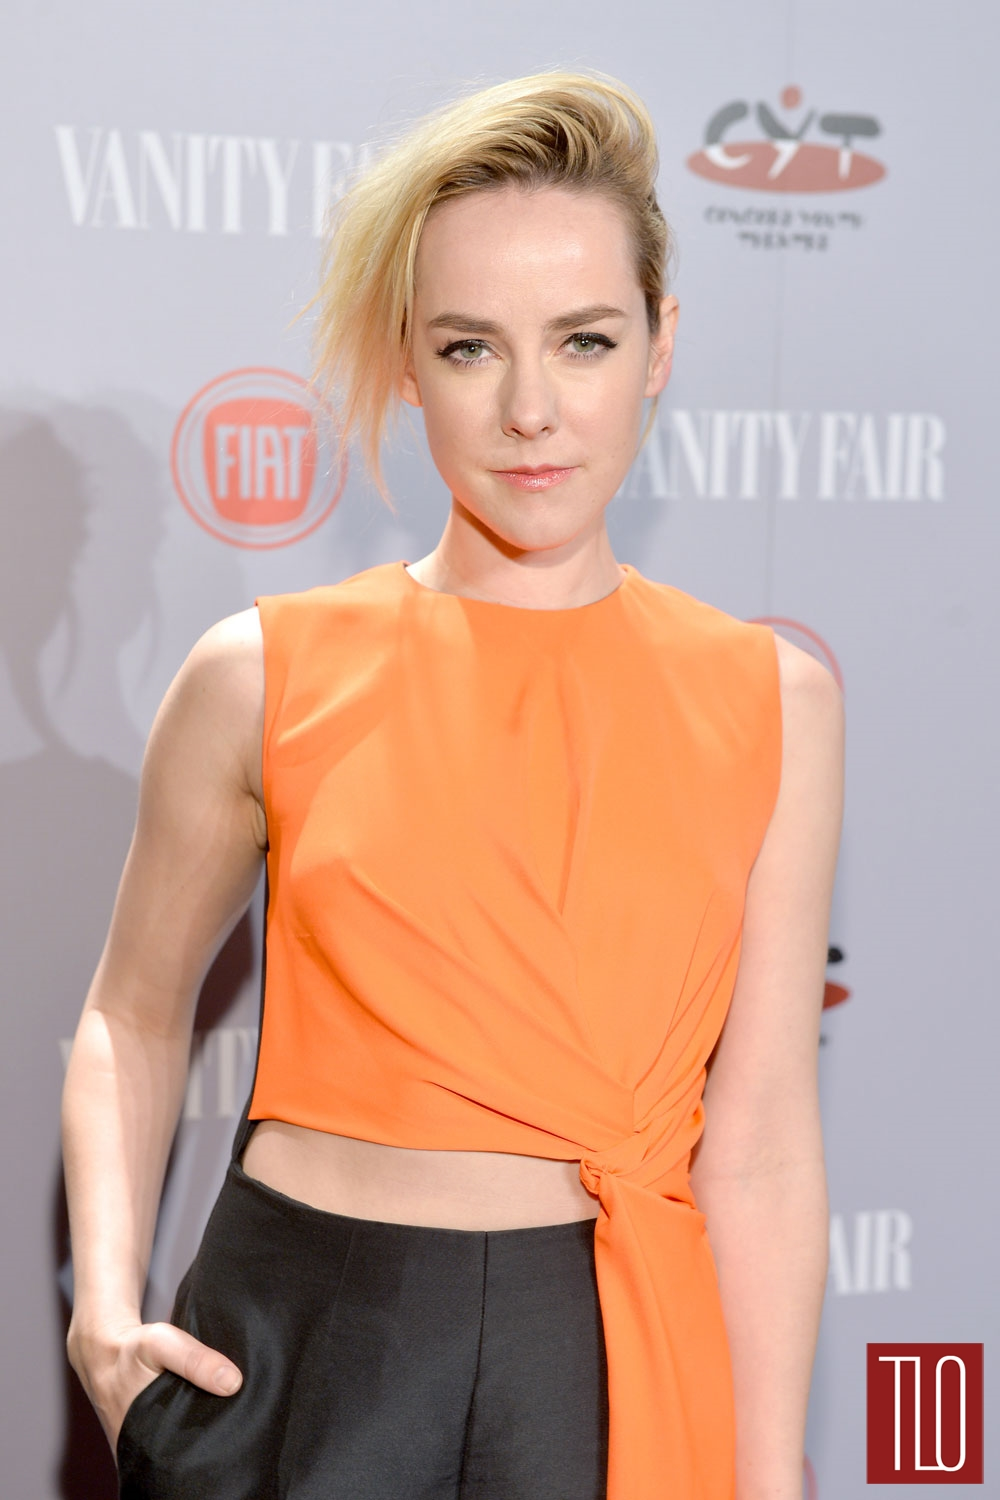 Jena-Malone-Roksanda-Ilincic-Vanity-Fair-Young-Hollywood-Tom-Lorenzo-Site-TLO (1)